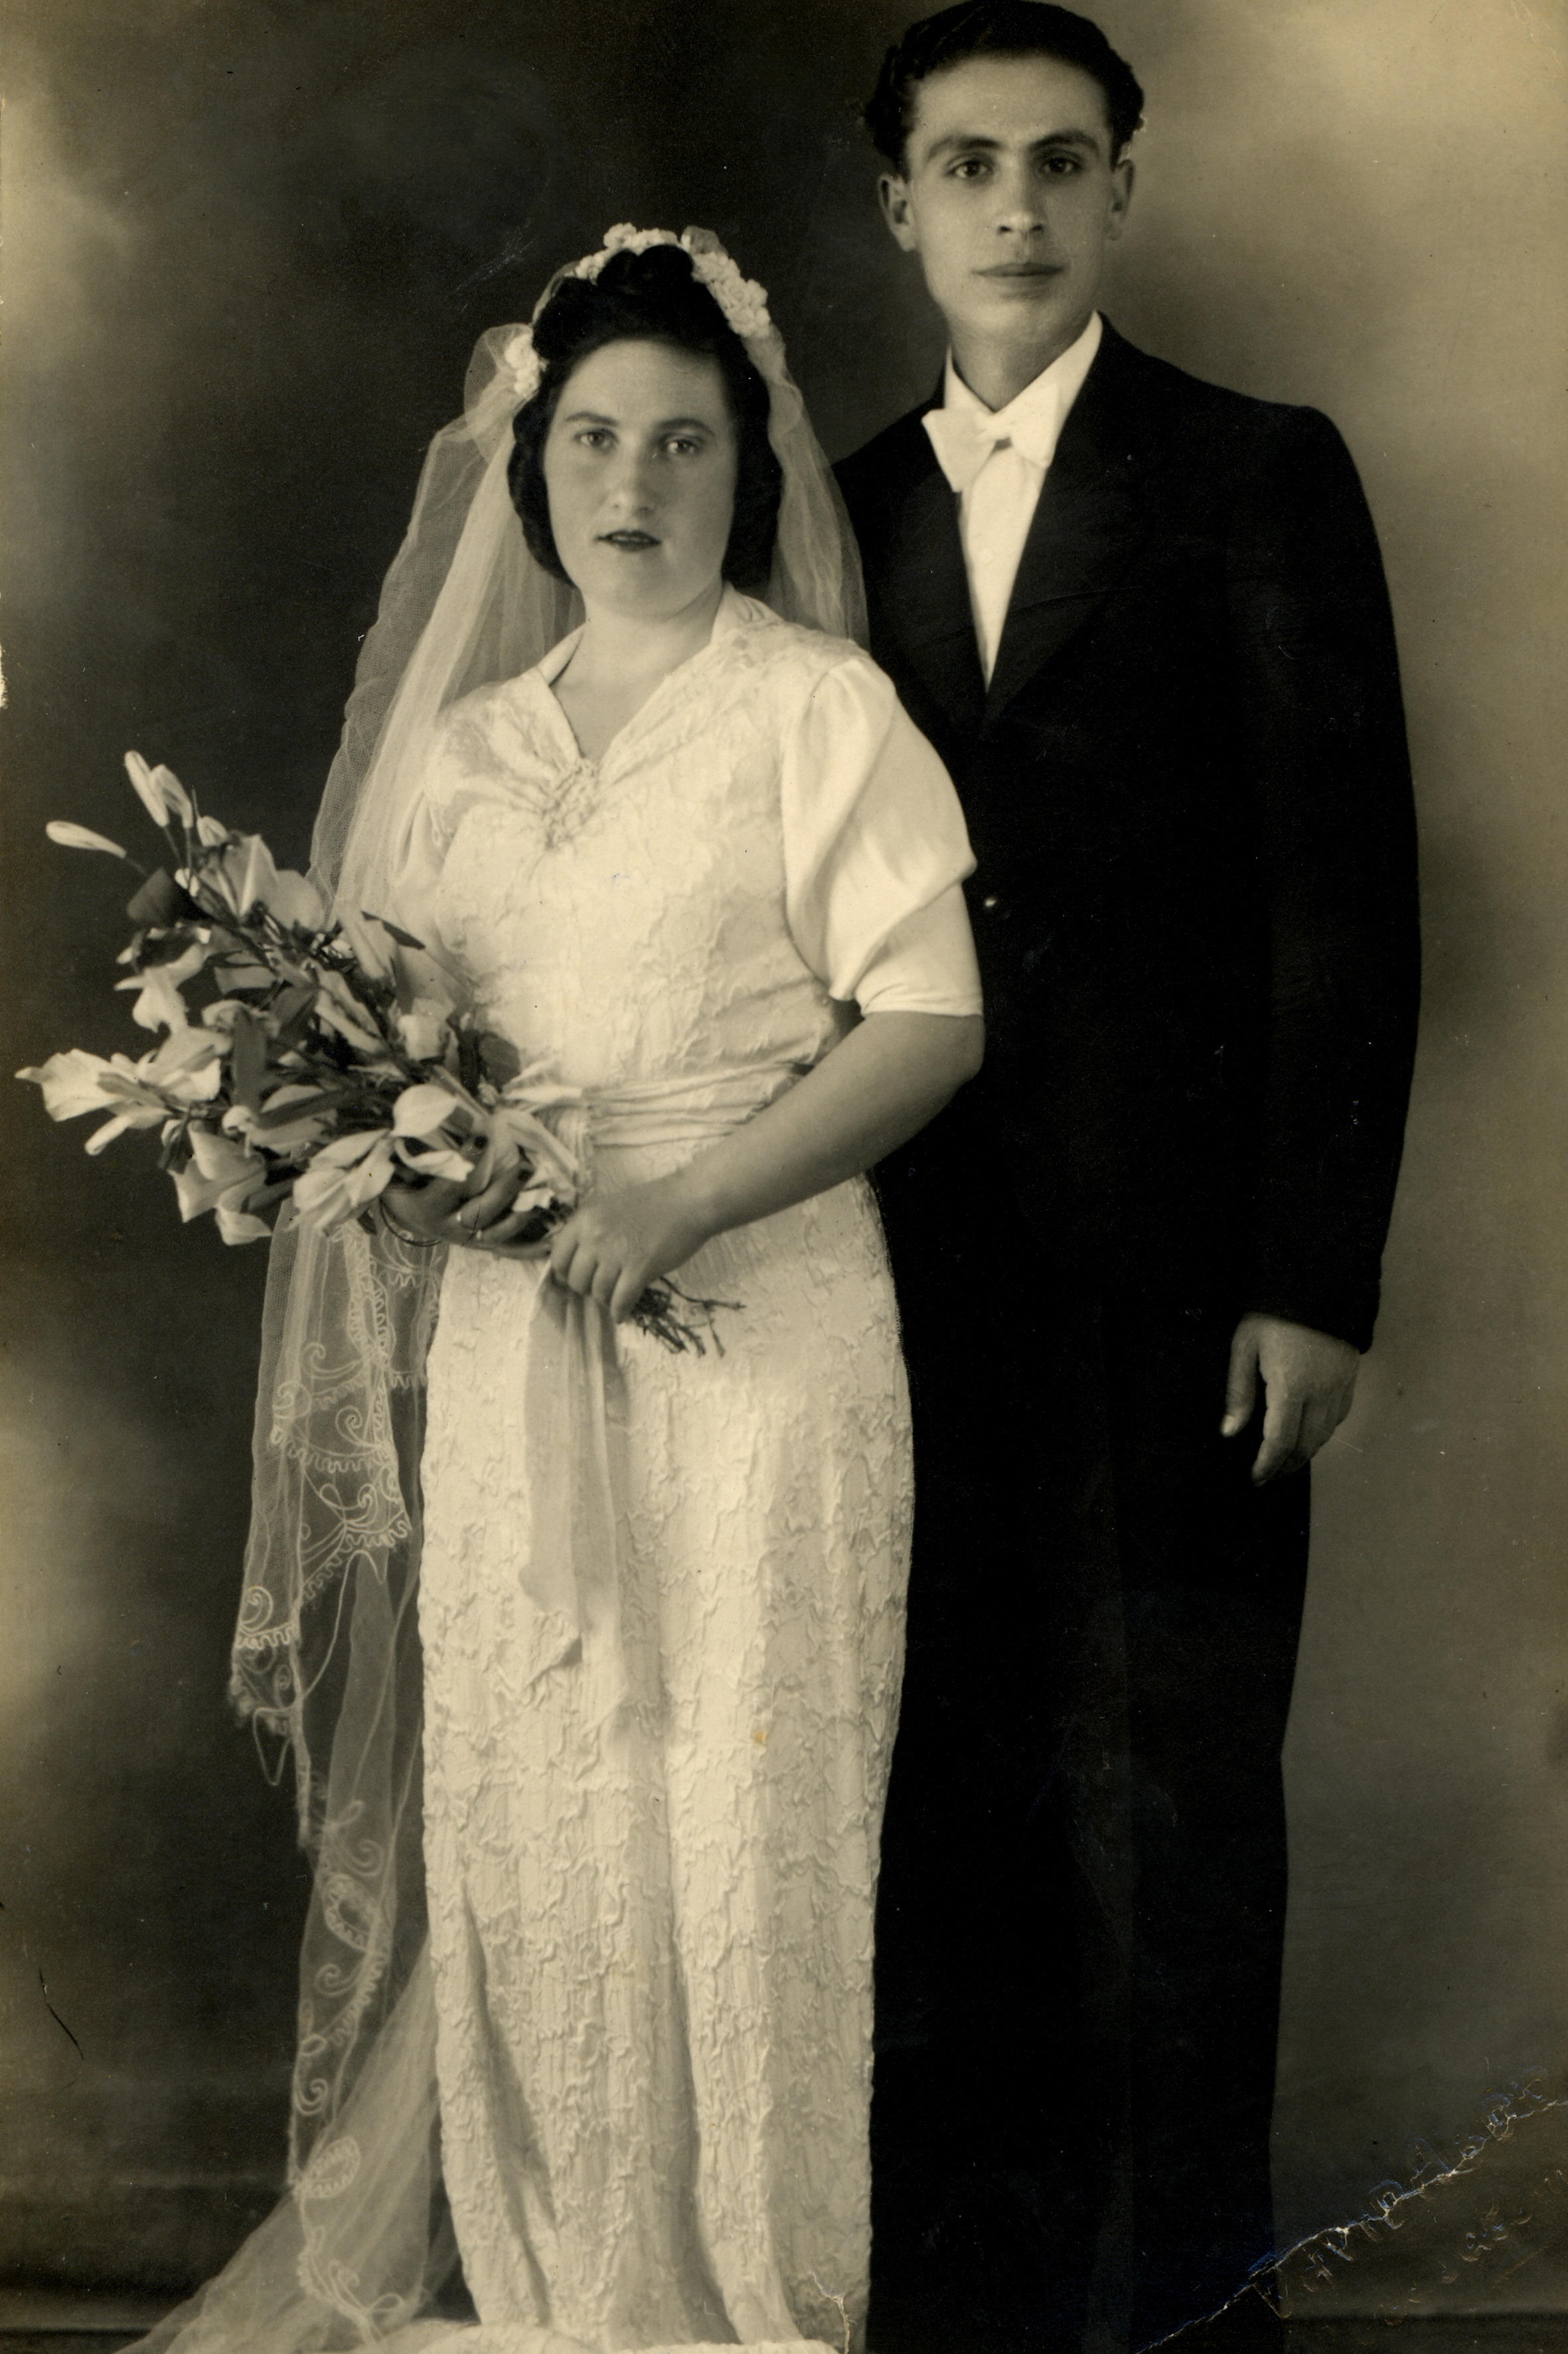 Gerez and Reful Museri's wedding picture